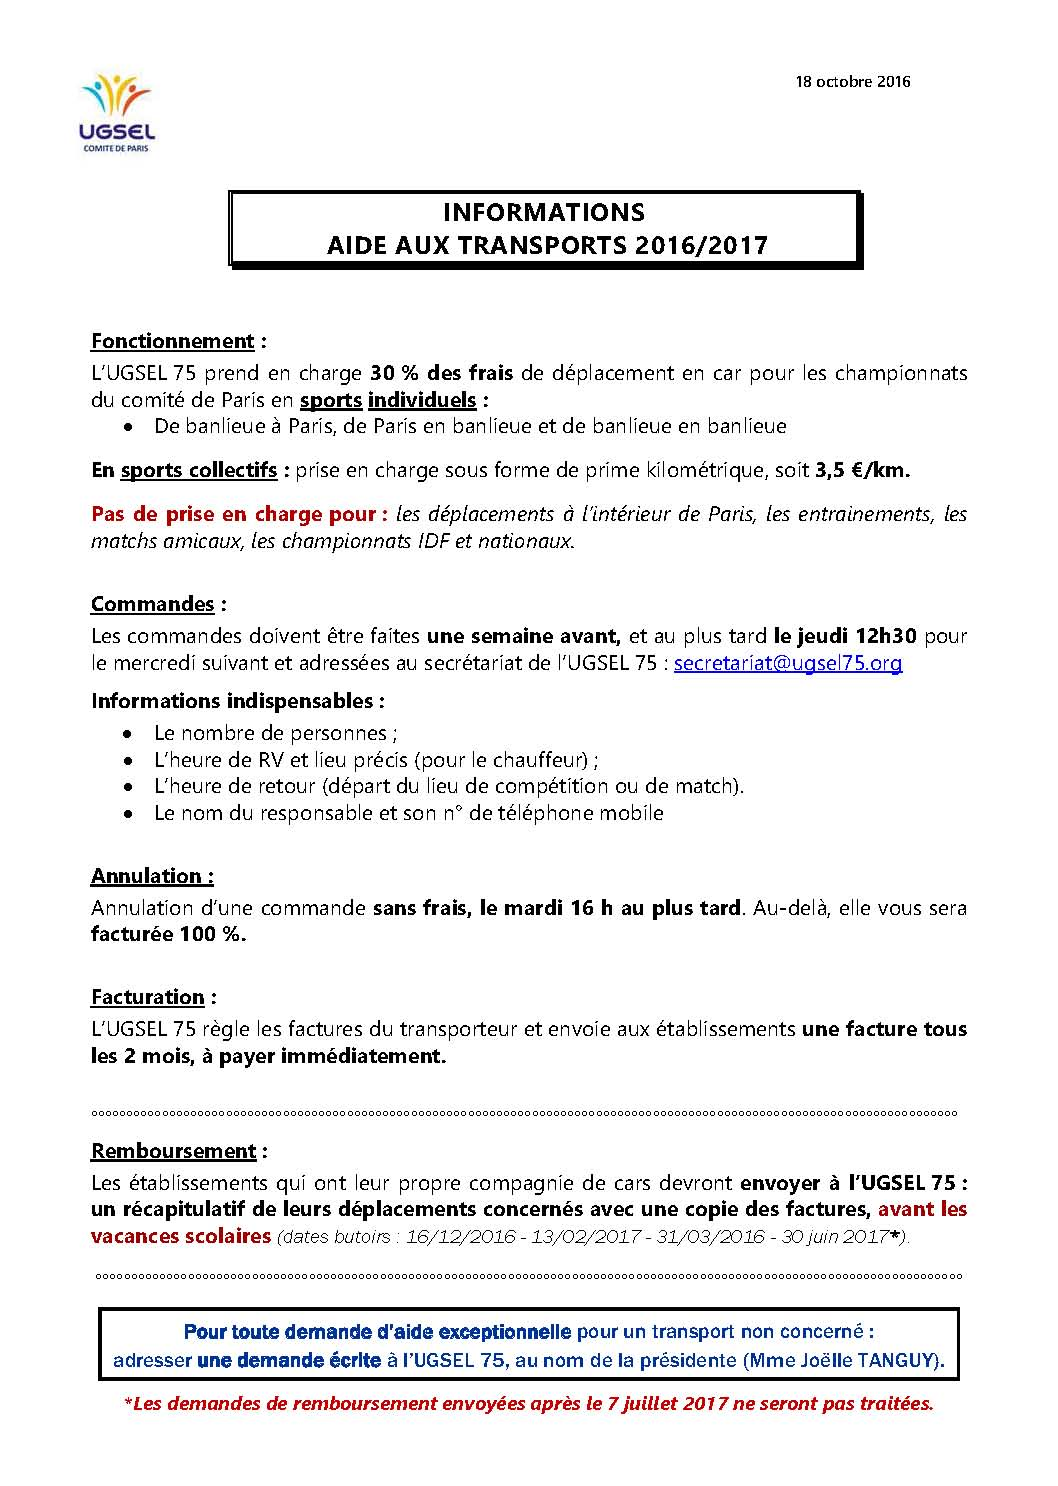 infos-aide-au-transport-2016-2017_page_1